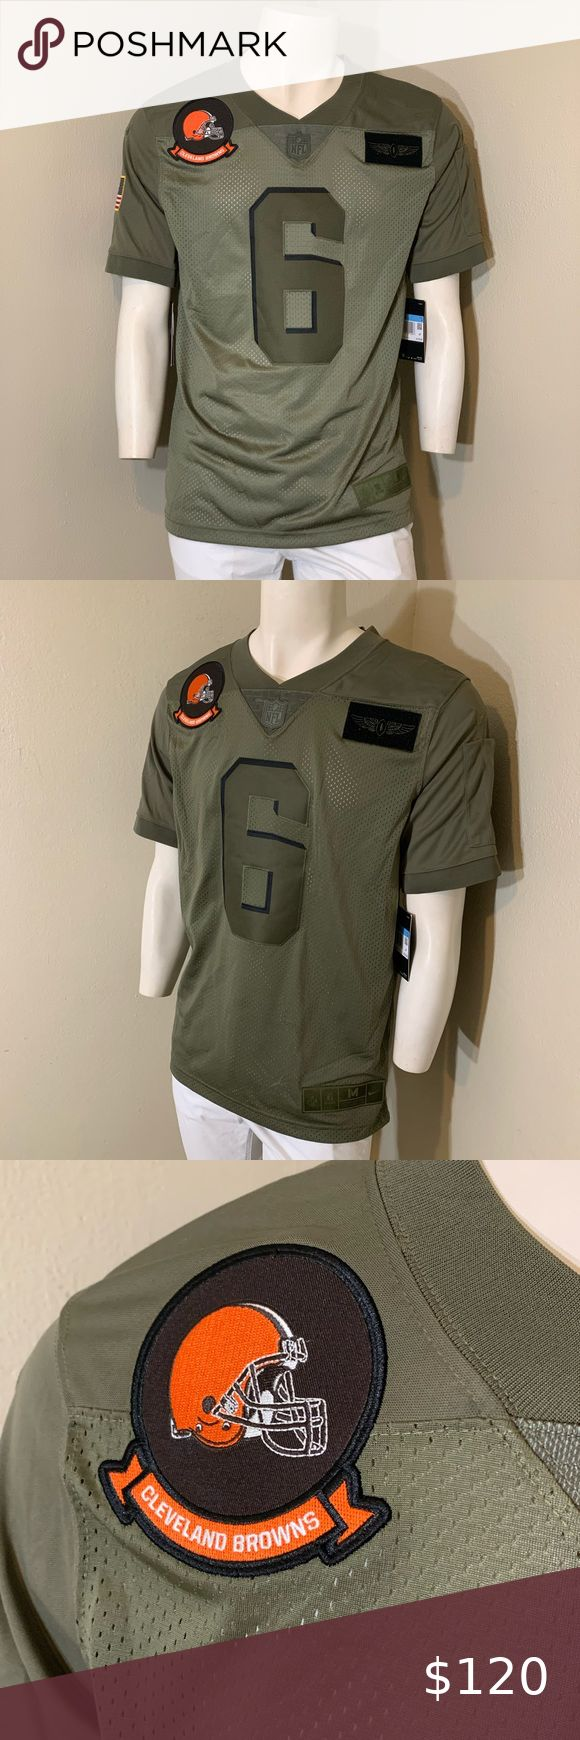 Cleveland Browns Baker Mayfield 2019 Camo Jersy In 2021 Grey Sweater Hoodie Black And White Shirt Pullover Sweatshirt Hoodie [ 1740 x 580 Pixel ]